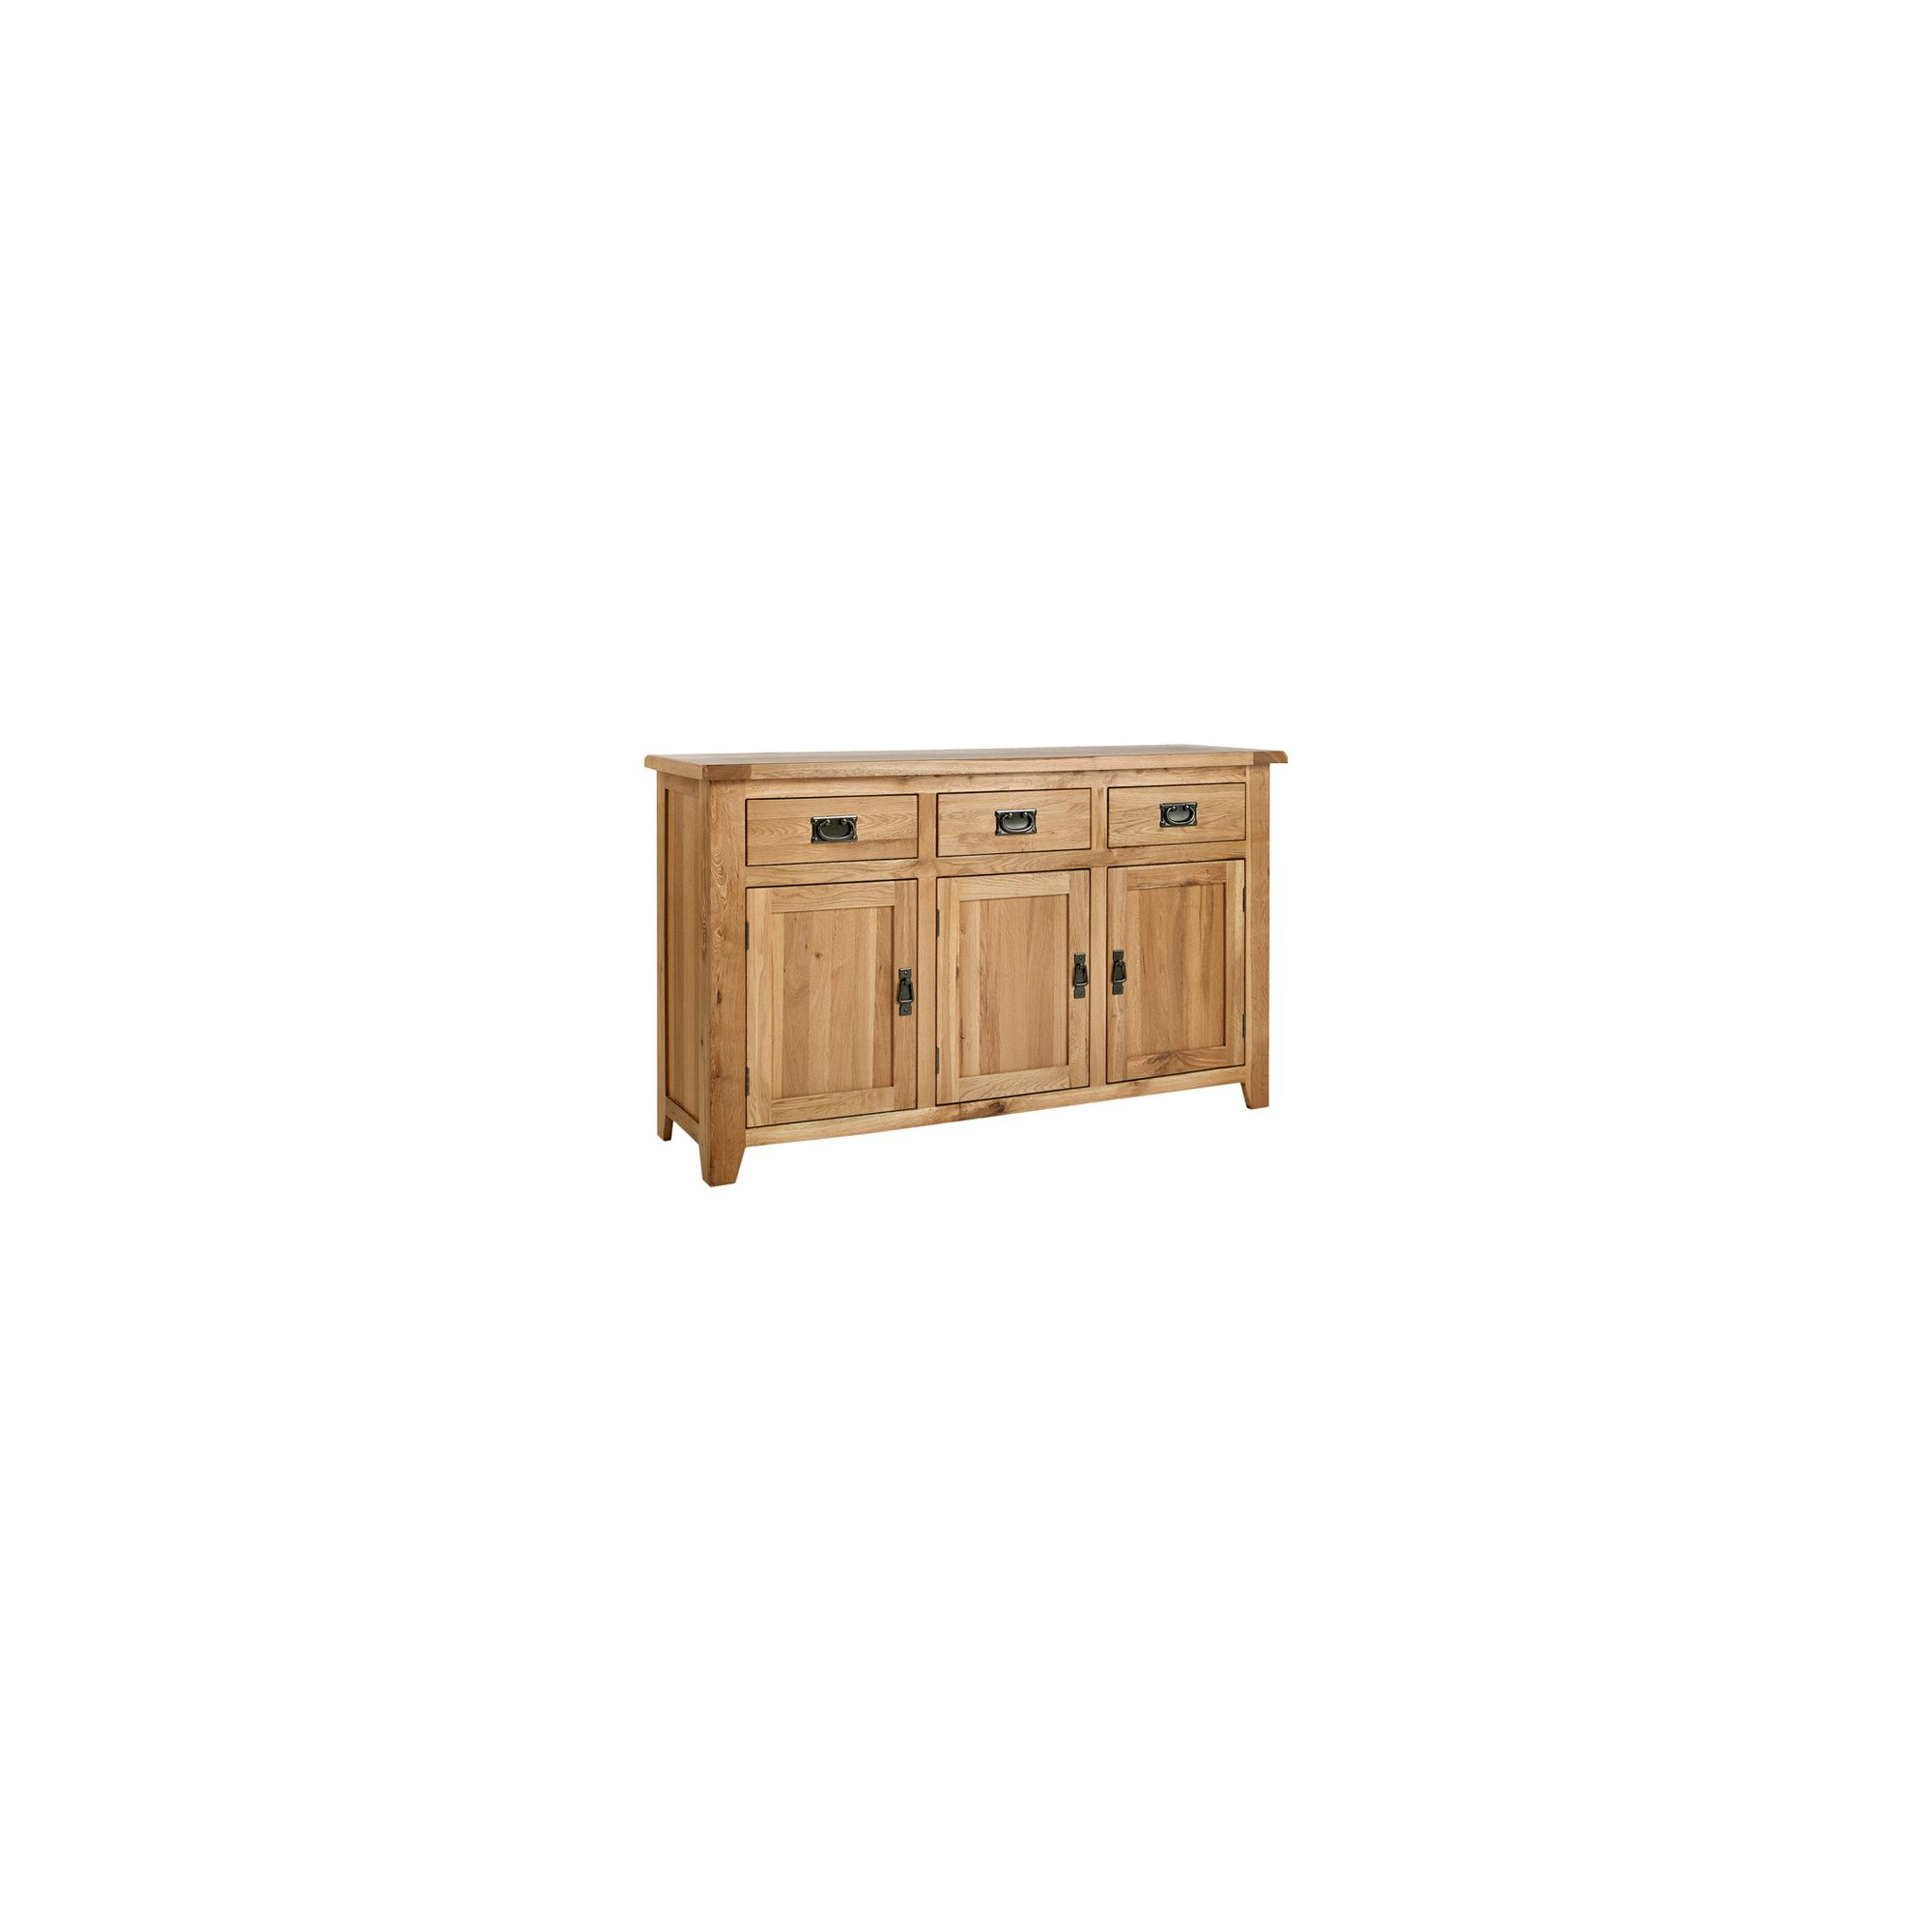 Ametis Westbury Reclaimed Oak Large Sideboard at Tesco Direct